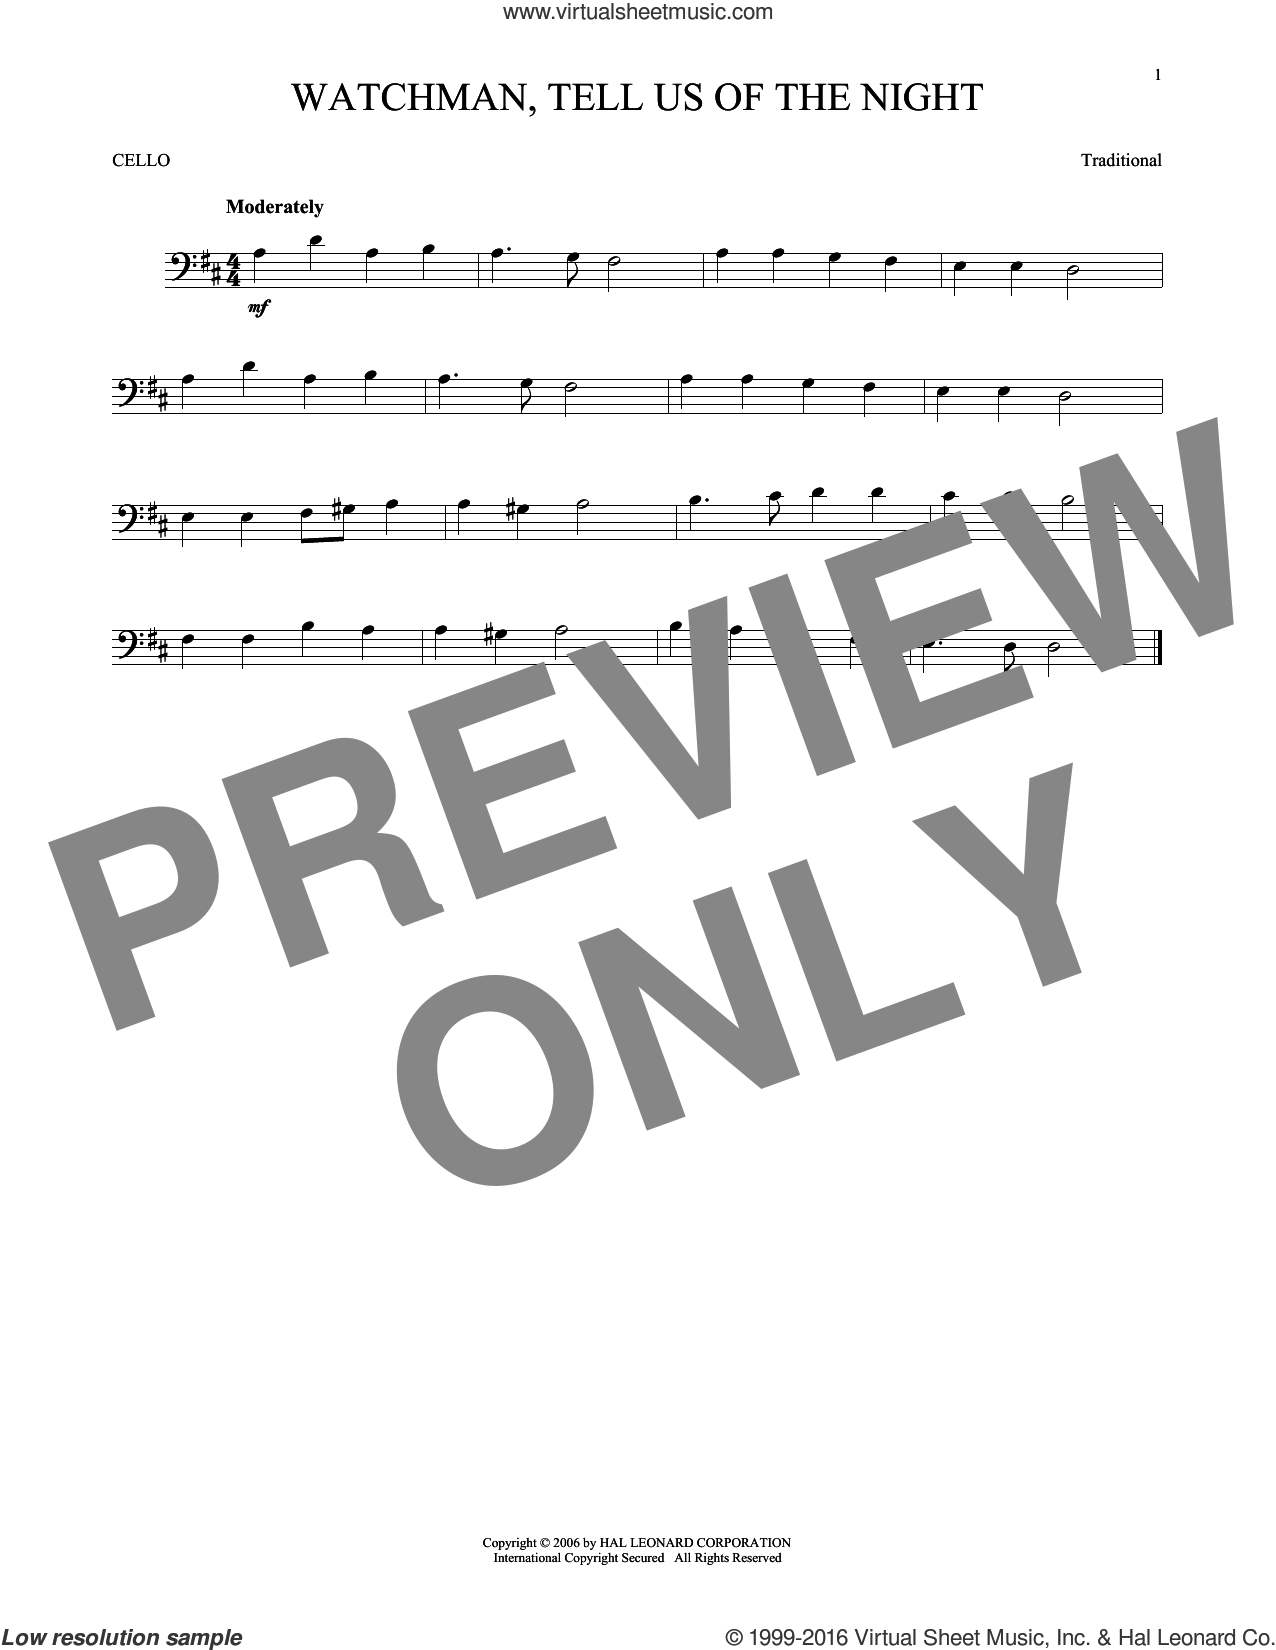 Watchman, Tell Us Of The Night sheet music for cello solo by John Bowring, Miscellaneous and Jacob Hintze, intermediate skill level